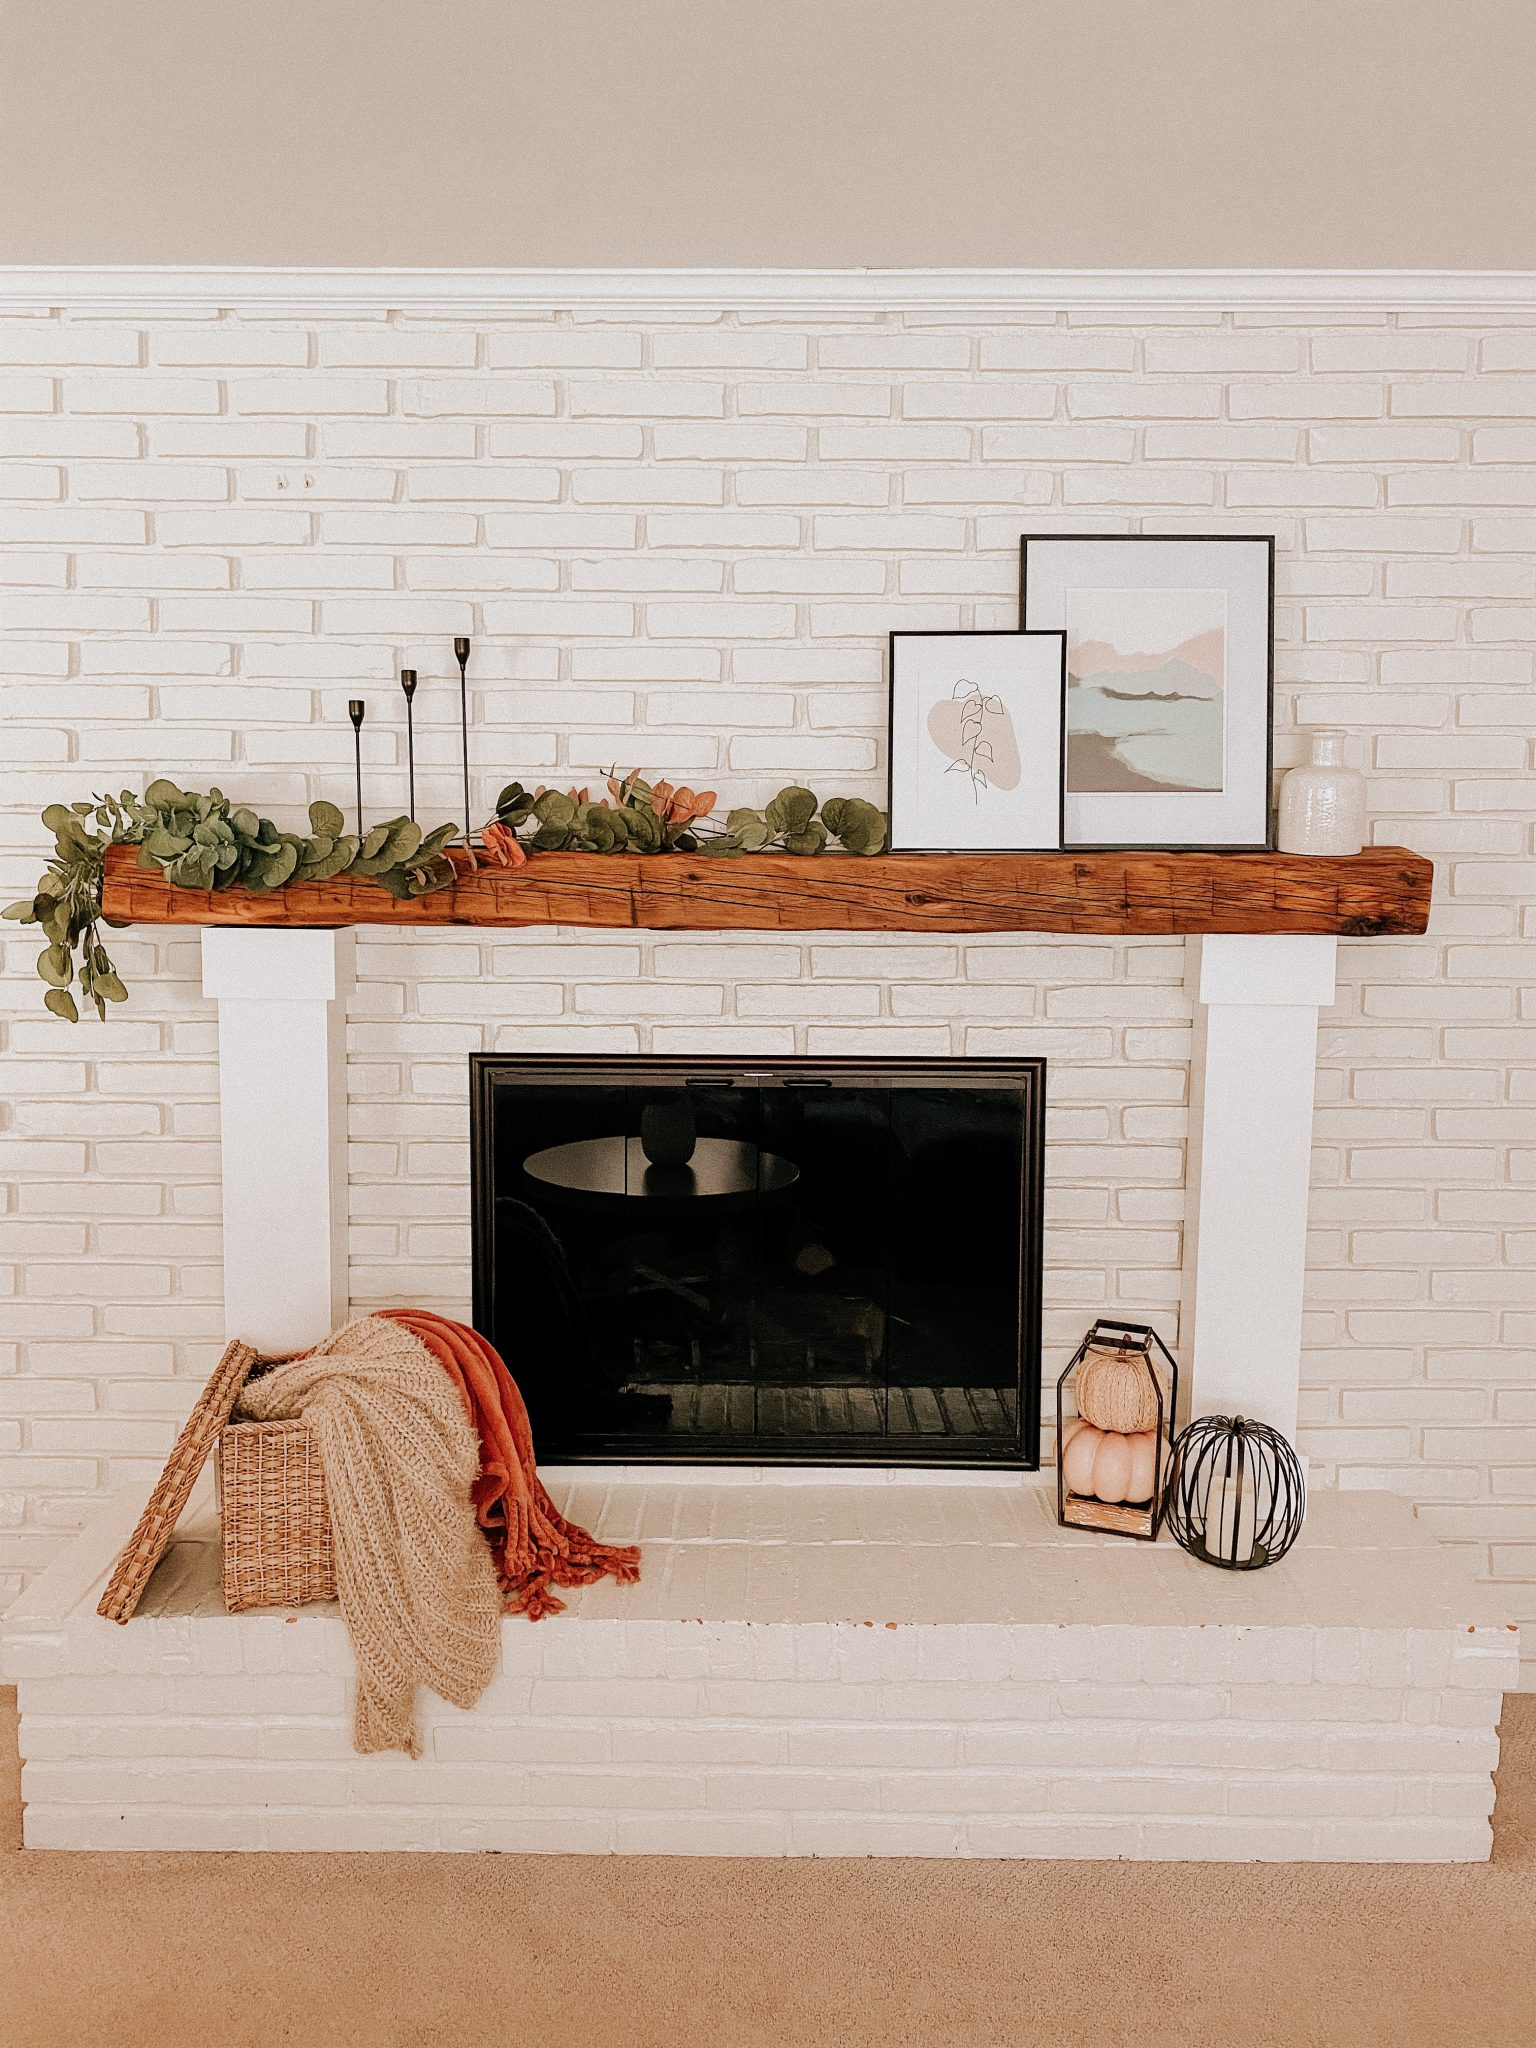 Fall living room accents | Daily Splendor Life and Style Blog #falldecor #falllivingroom #manteldecor #fallfireplace #neutraldecor #simplemantel